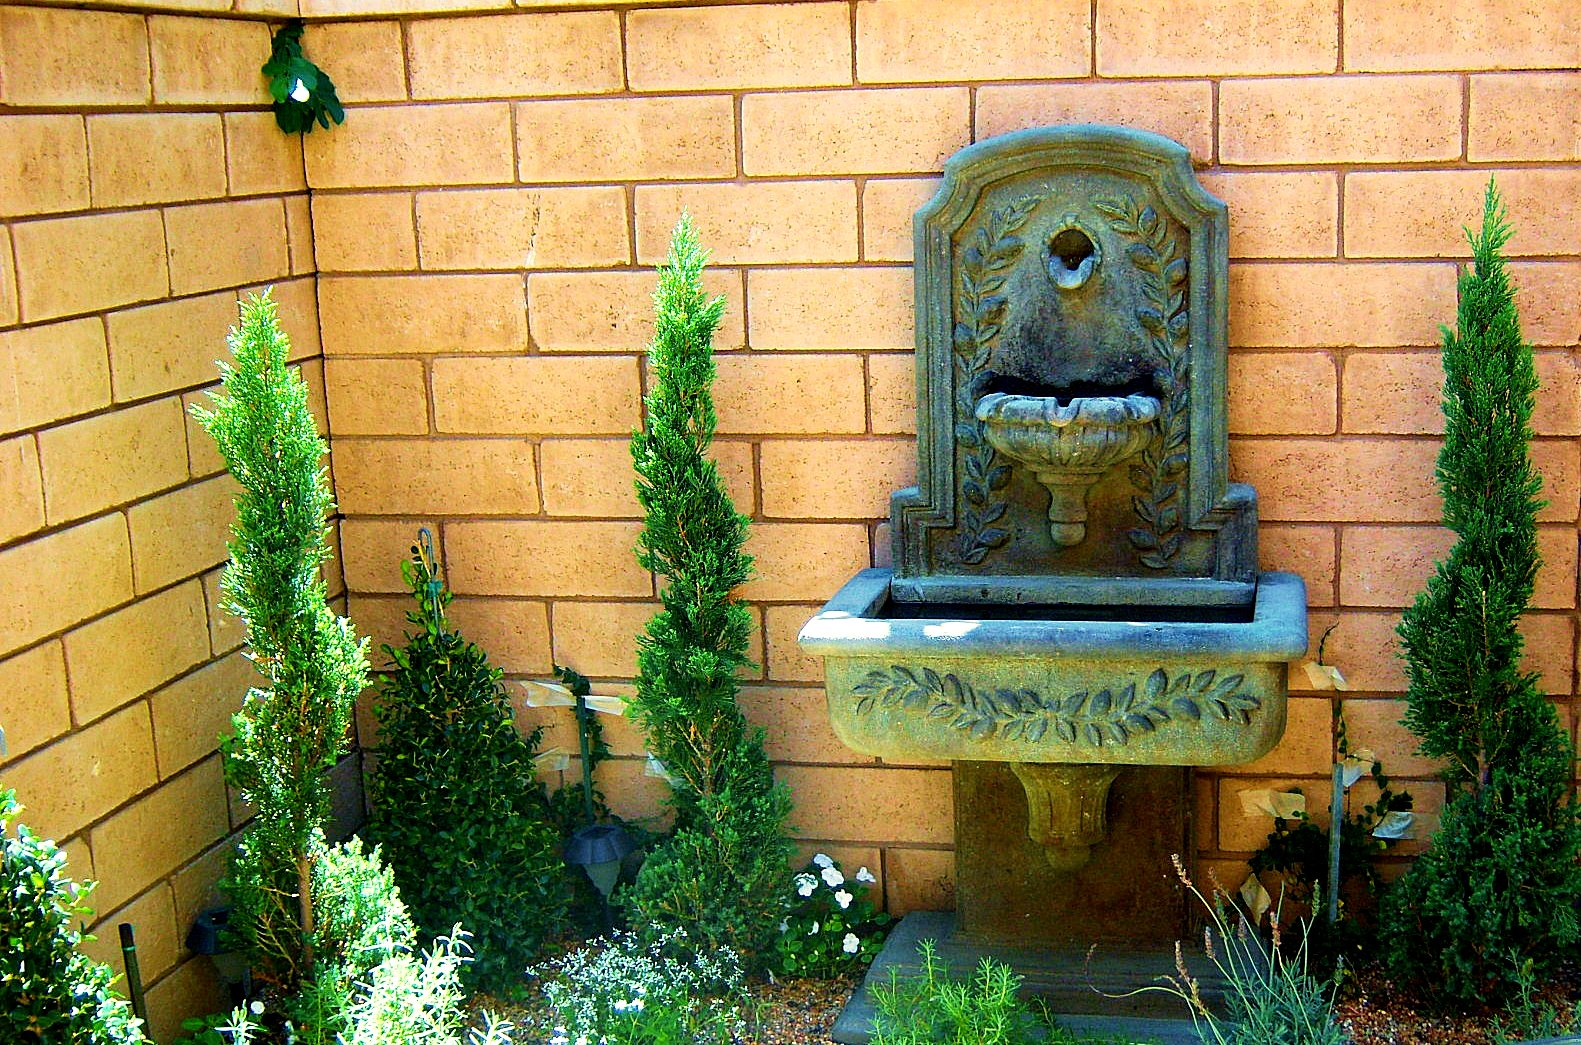 Old Fashioned Wall Fountain Ideas Images - All About Wallart ...